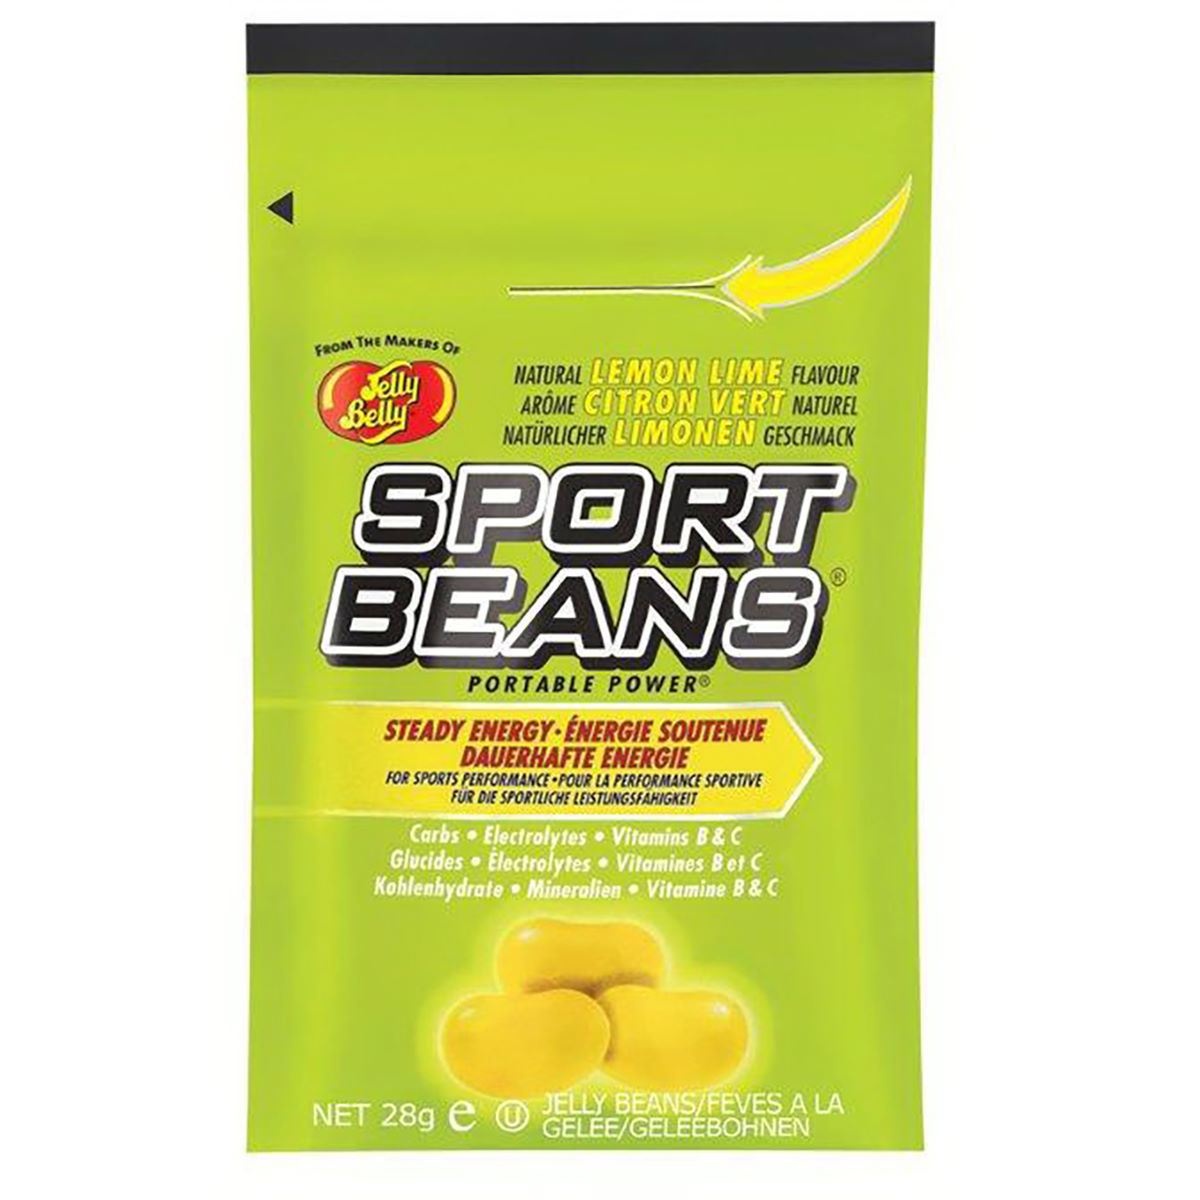 Image of Bonbons Jelly Belly Sports (24 x 28 g) - 24g 41504 - 21-30